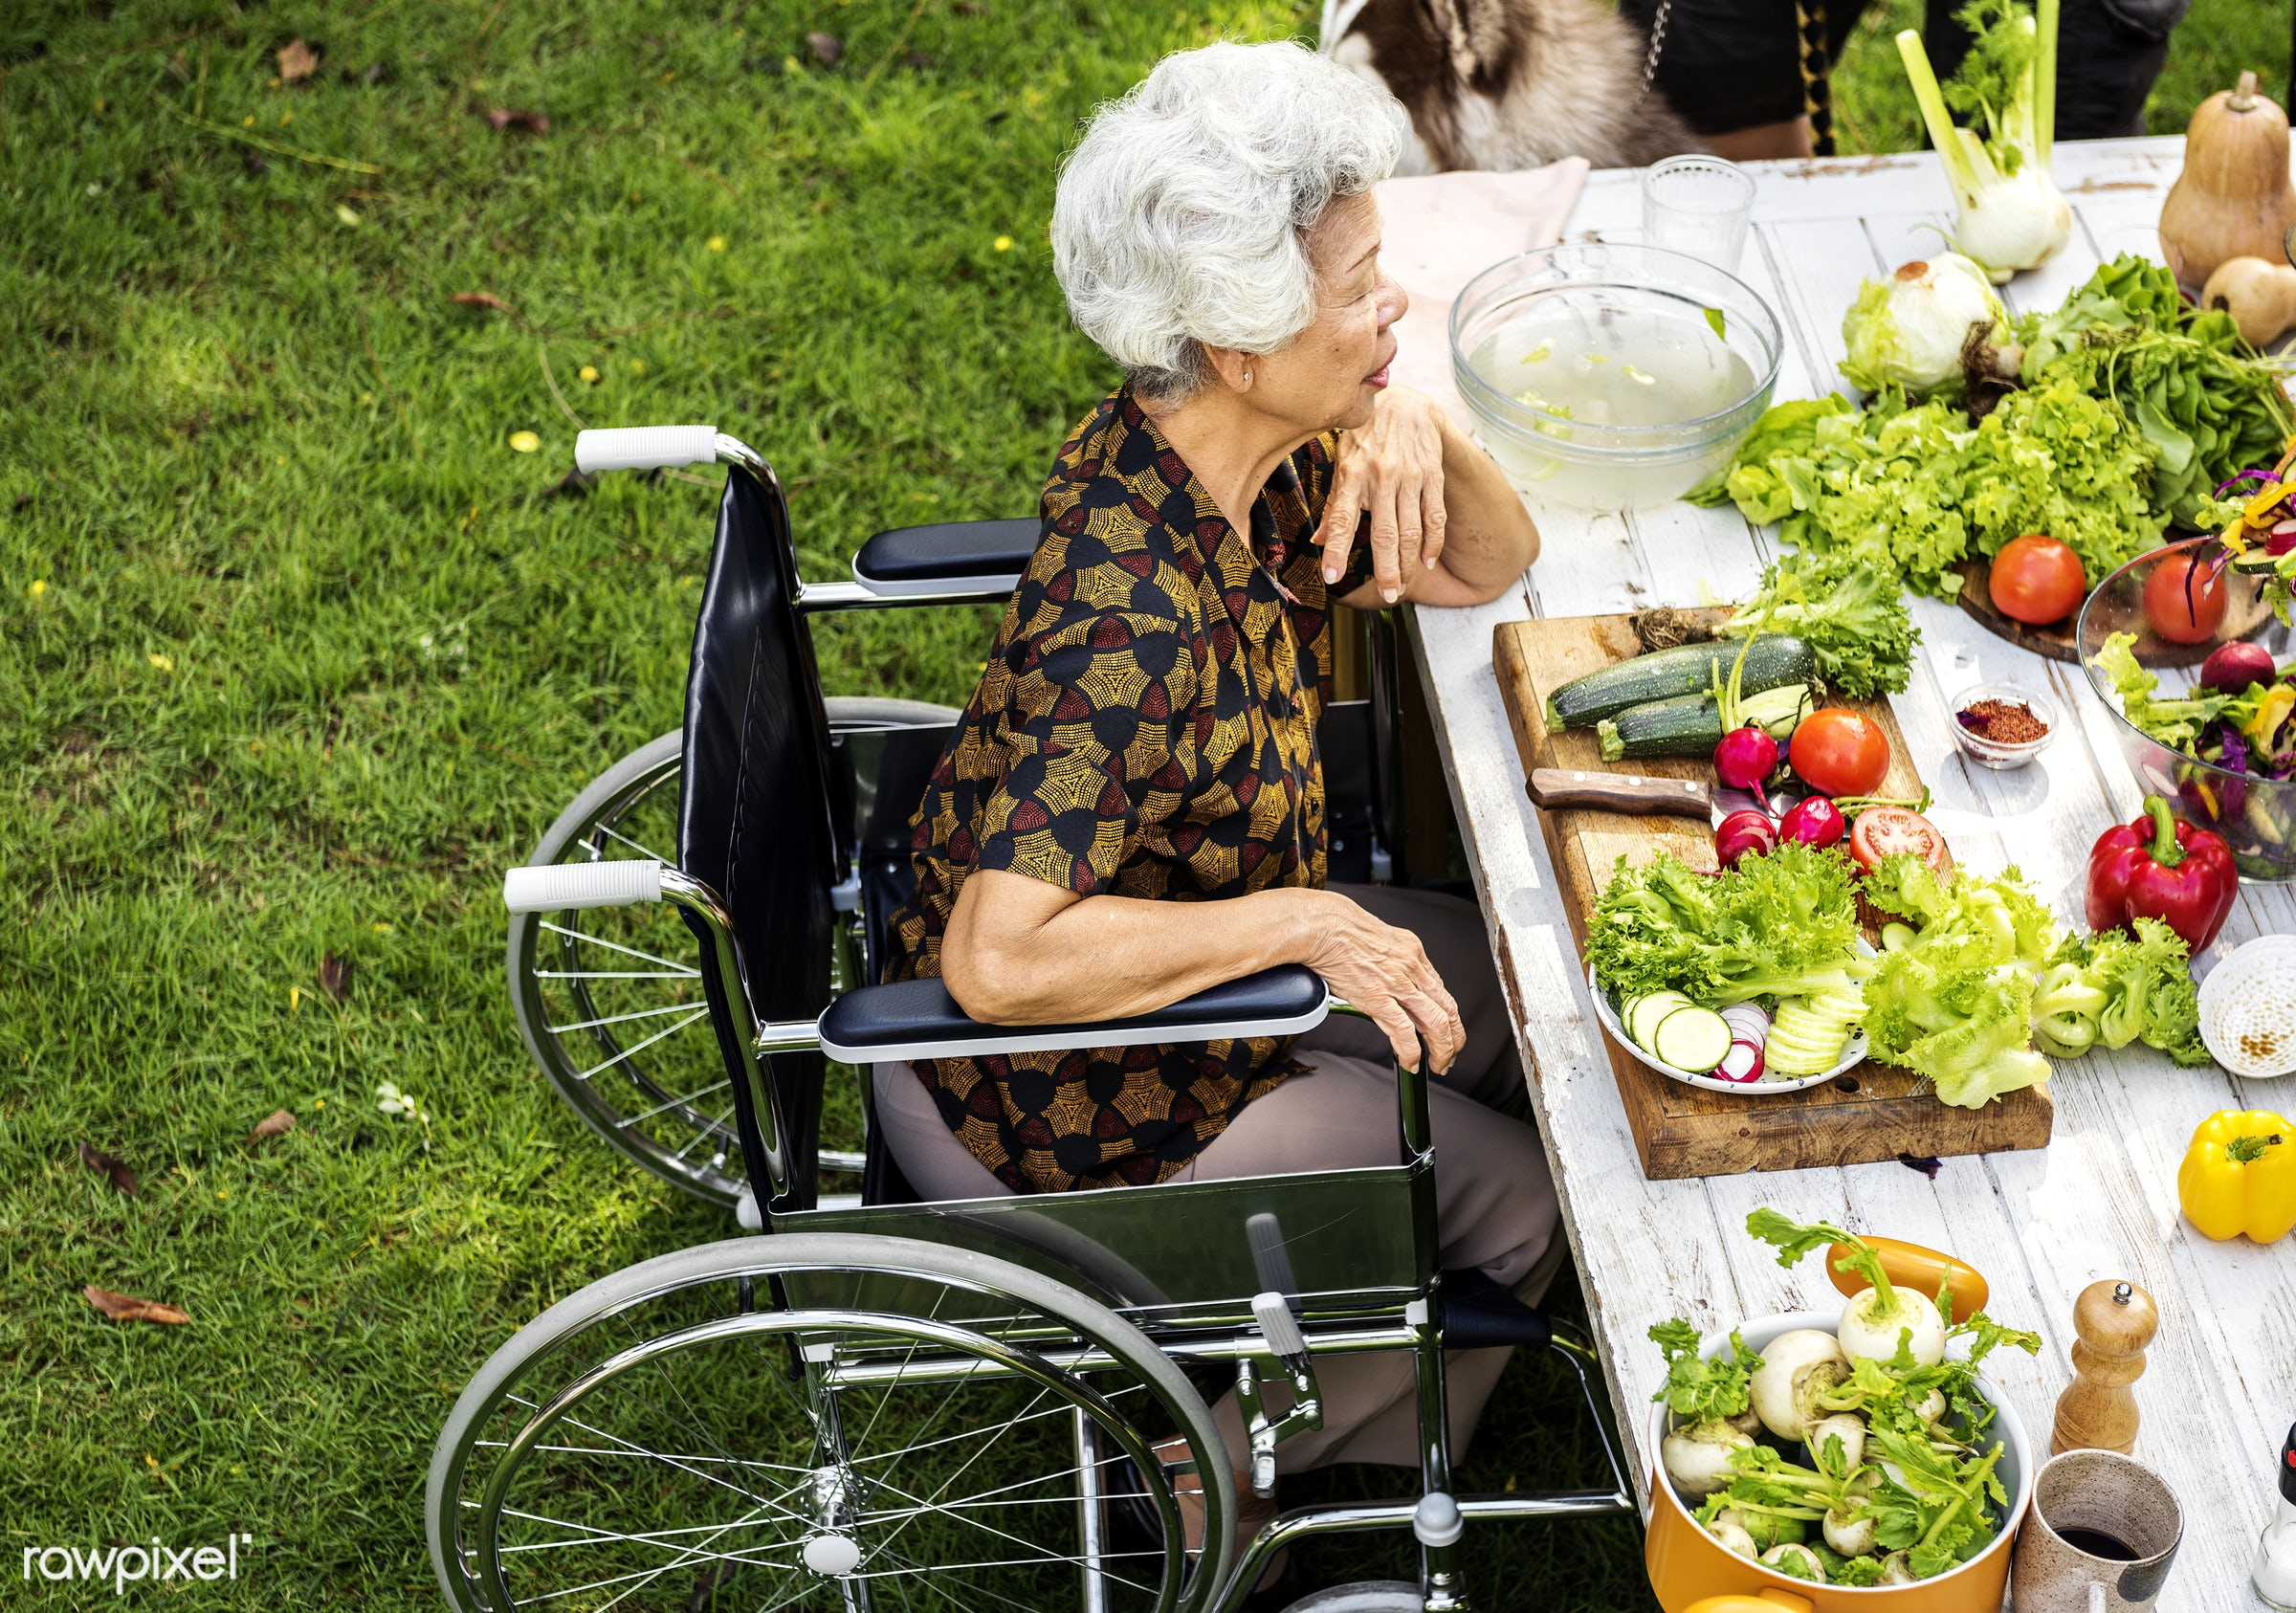 old, lawn, yard, party, fresh, wheelchair, woman, disability, various, disable, healthcare, handicapped, support, grass,...